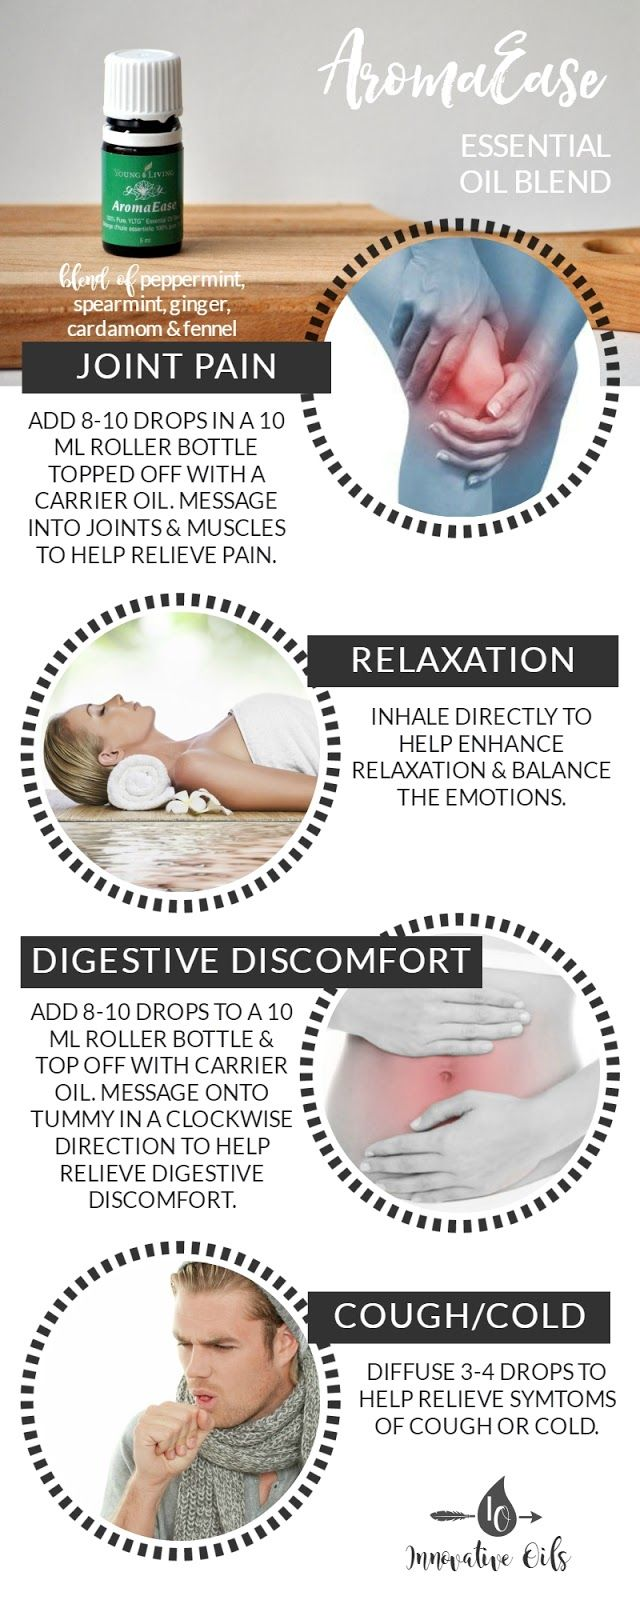 I just love this oil!! AromaEase essential oil blend has a cool, minty aroma and contains powerful essential oil constituents that pr...